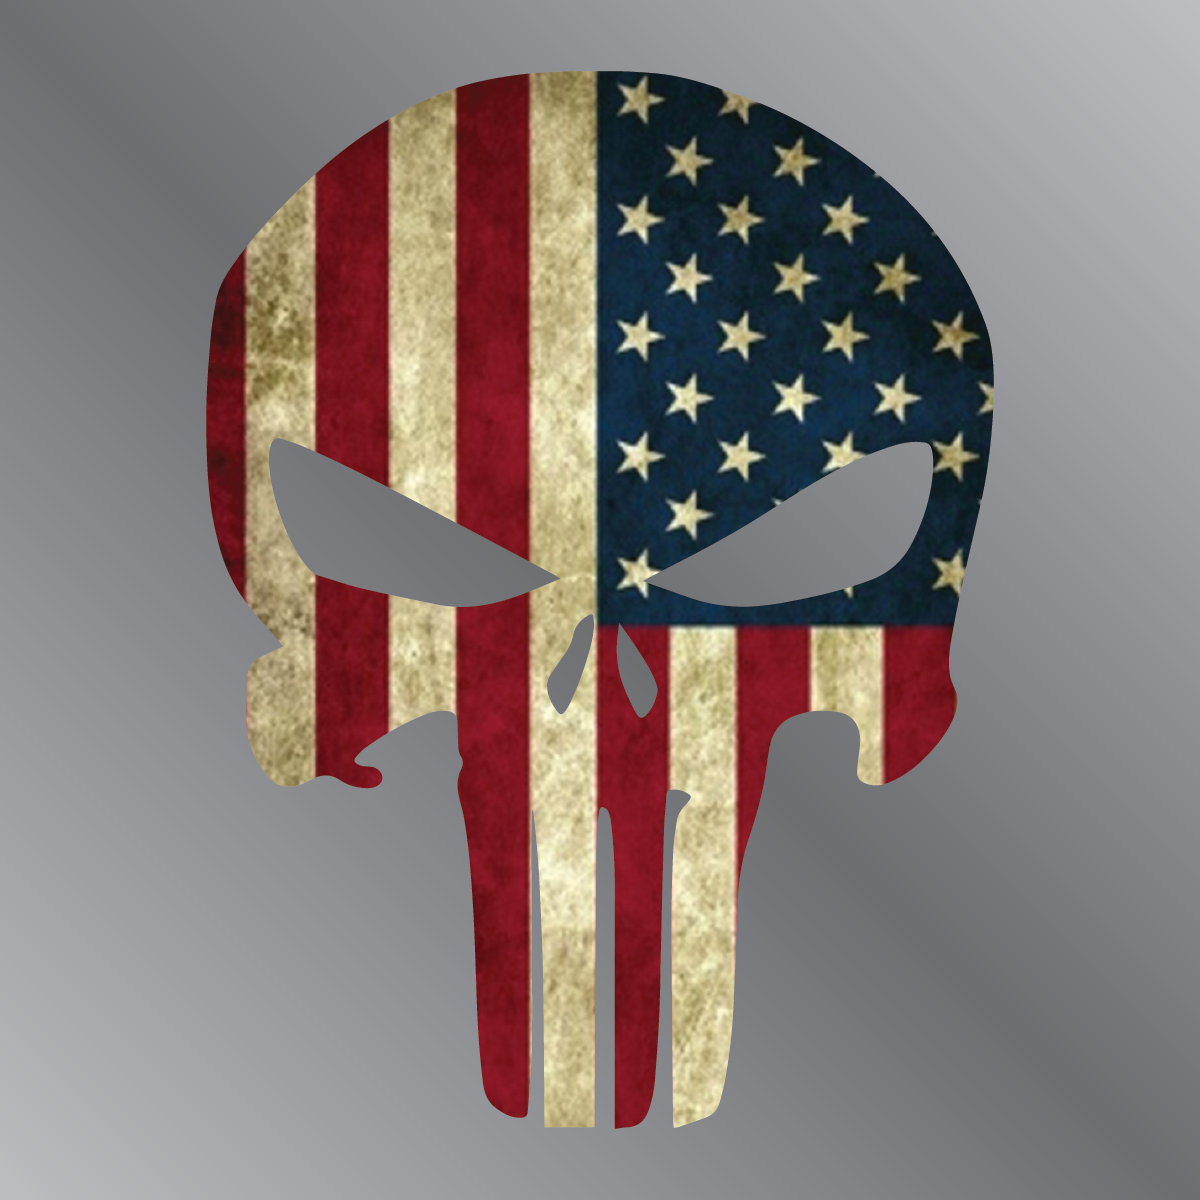 Punisher American Flag Decal - Motorcycle helmet decals militarysubdued american flag sticker military tactical usa helmet decal